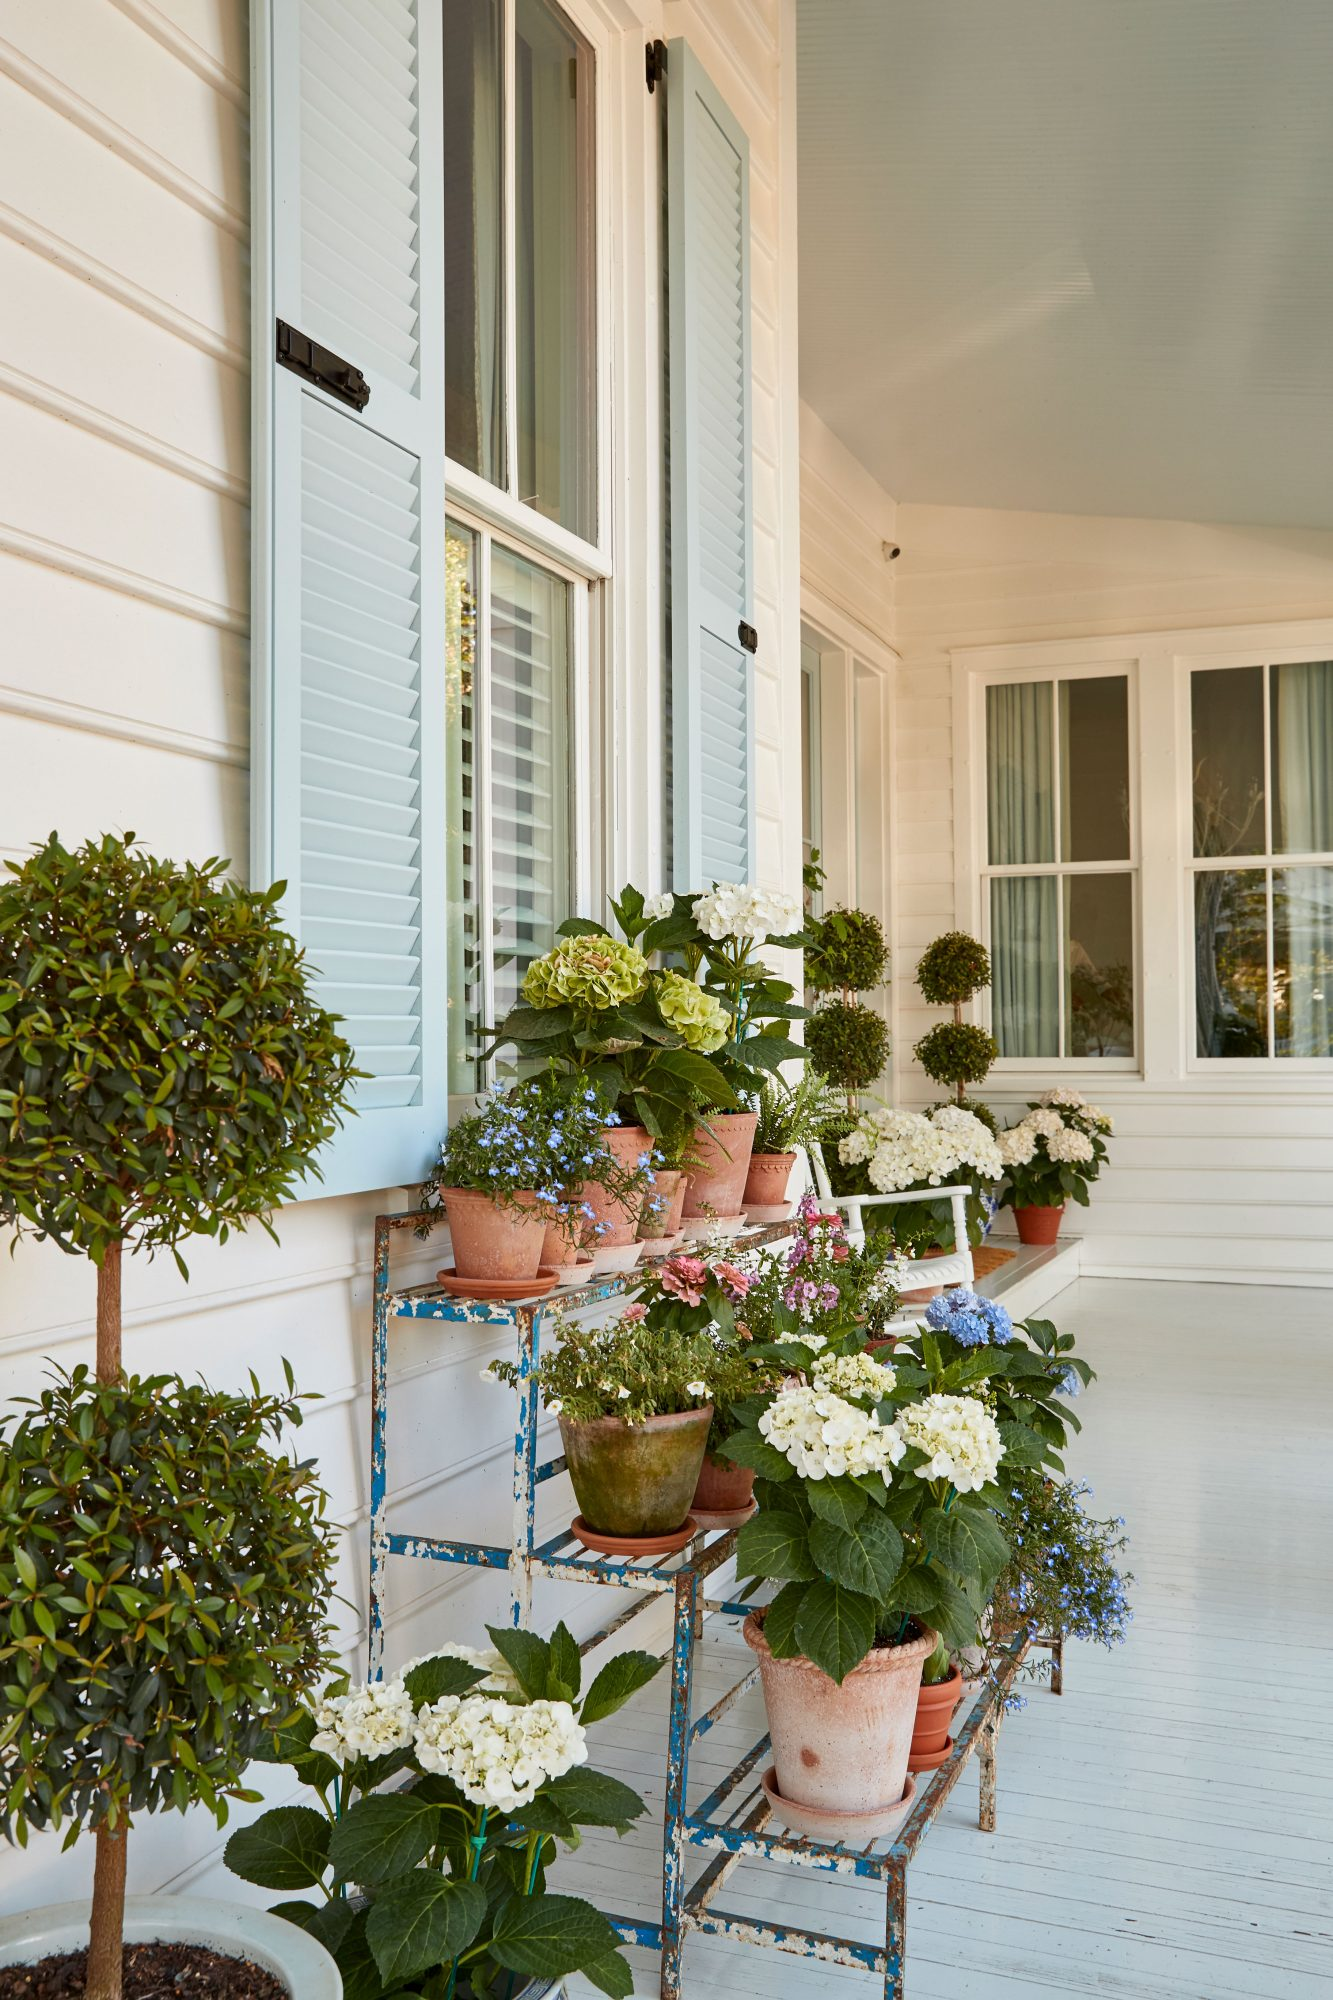 Layered potted plants on front porch